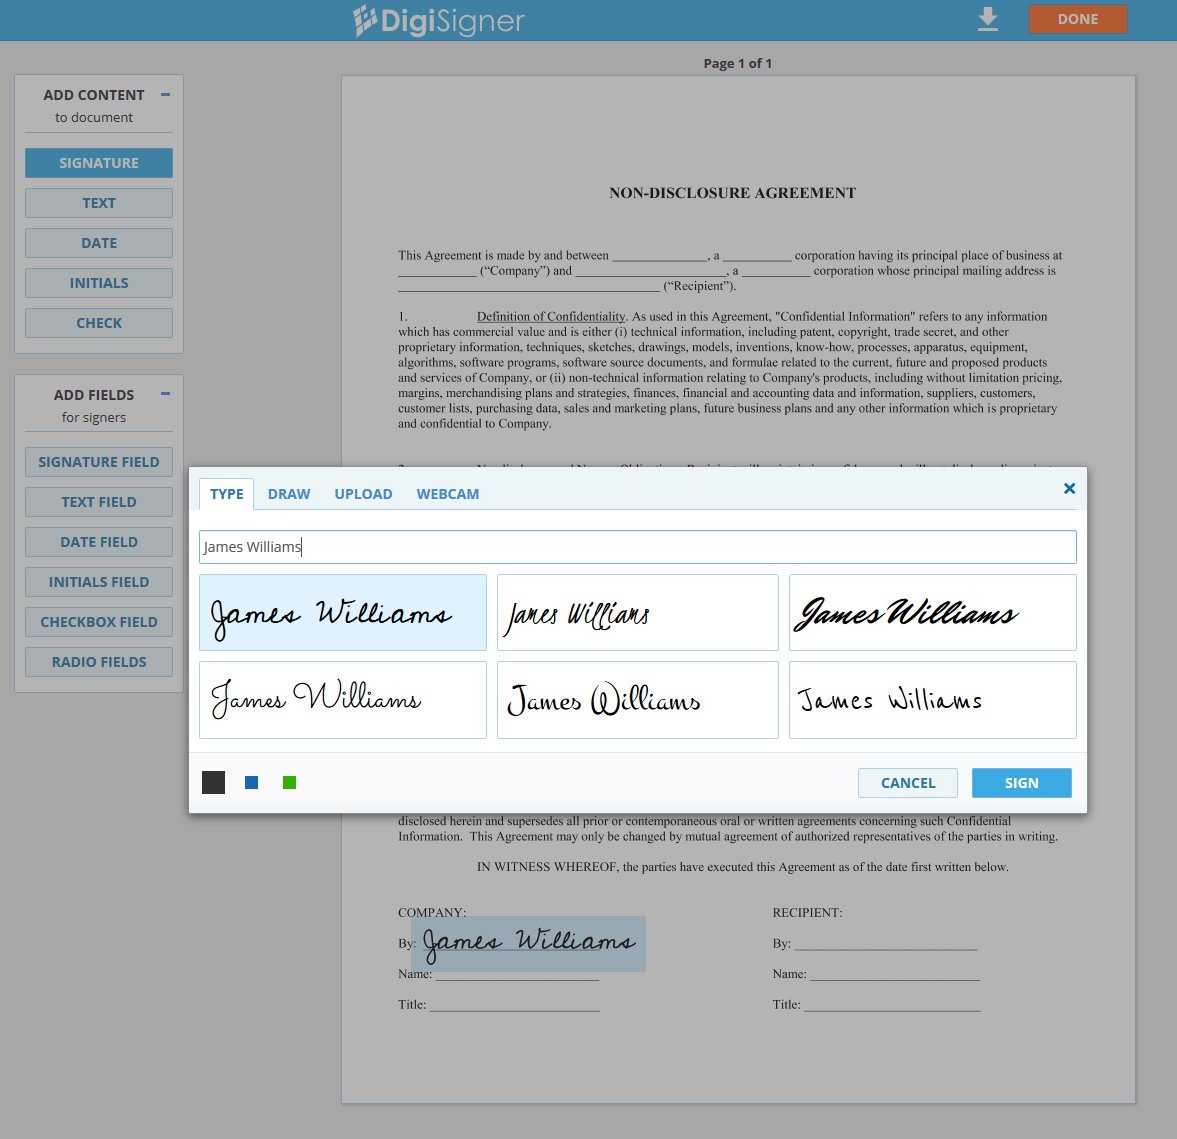 DigiSigner Demo - Sign document